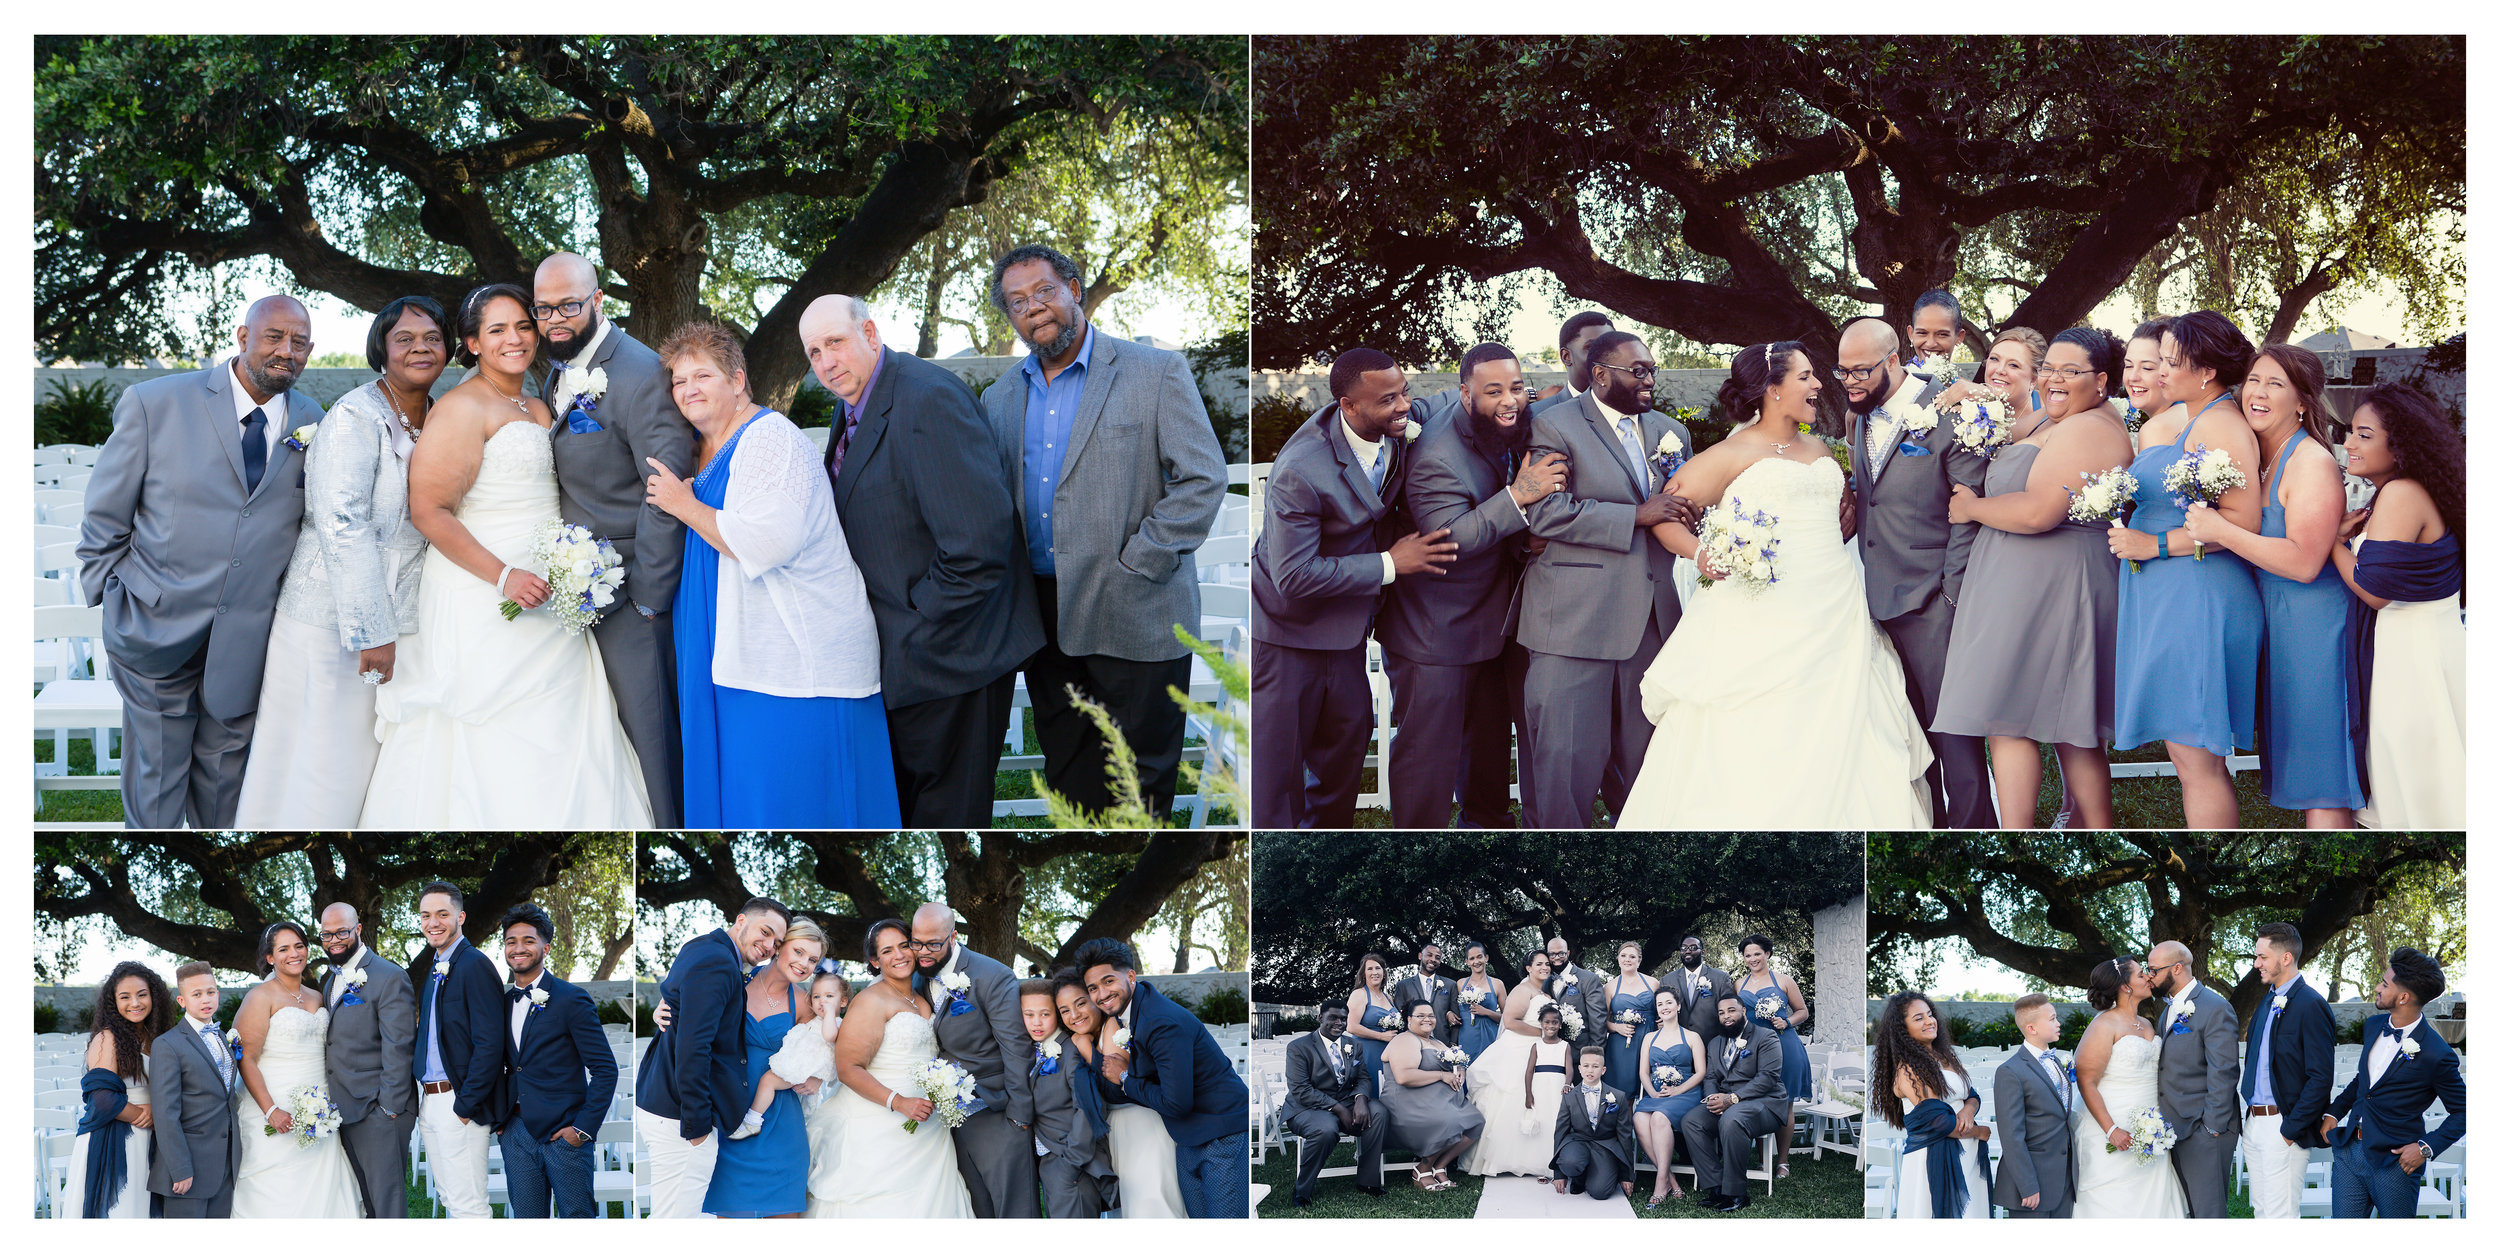 Fort Worth Wedding Photographer011.jpg